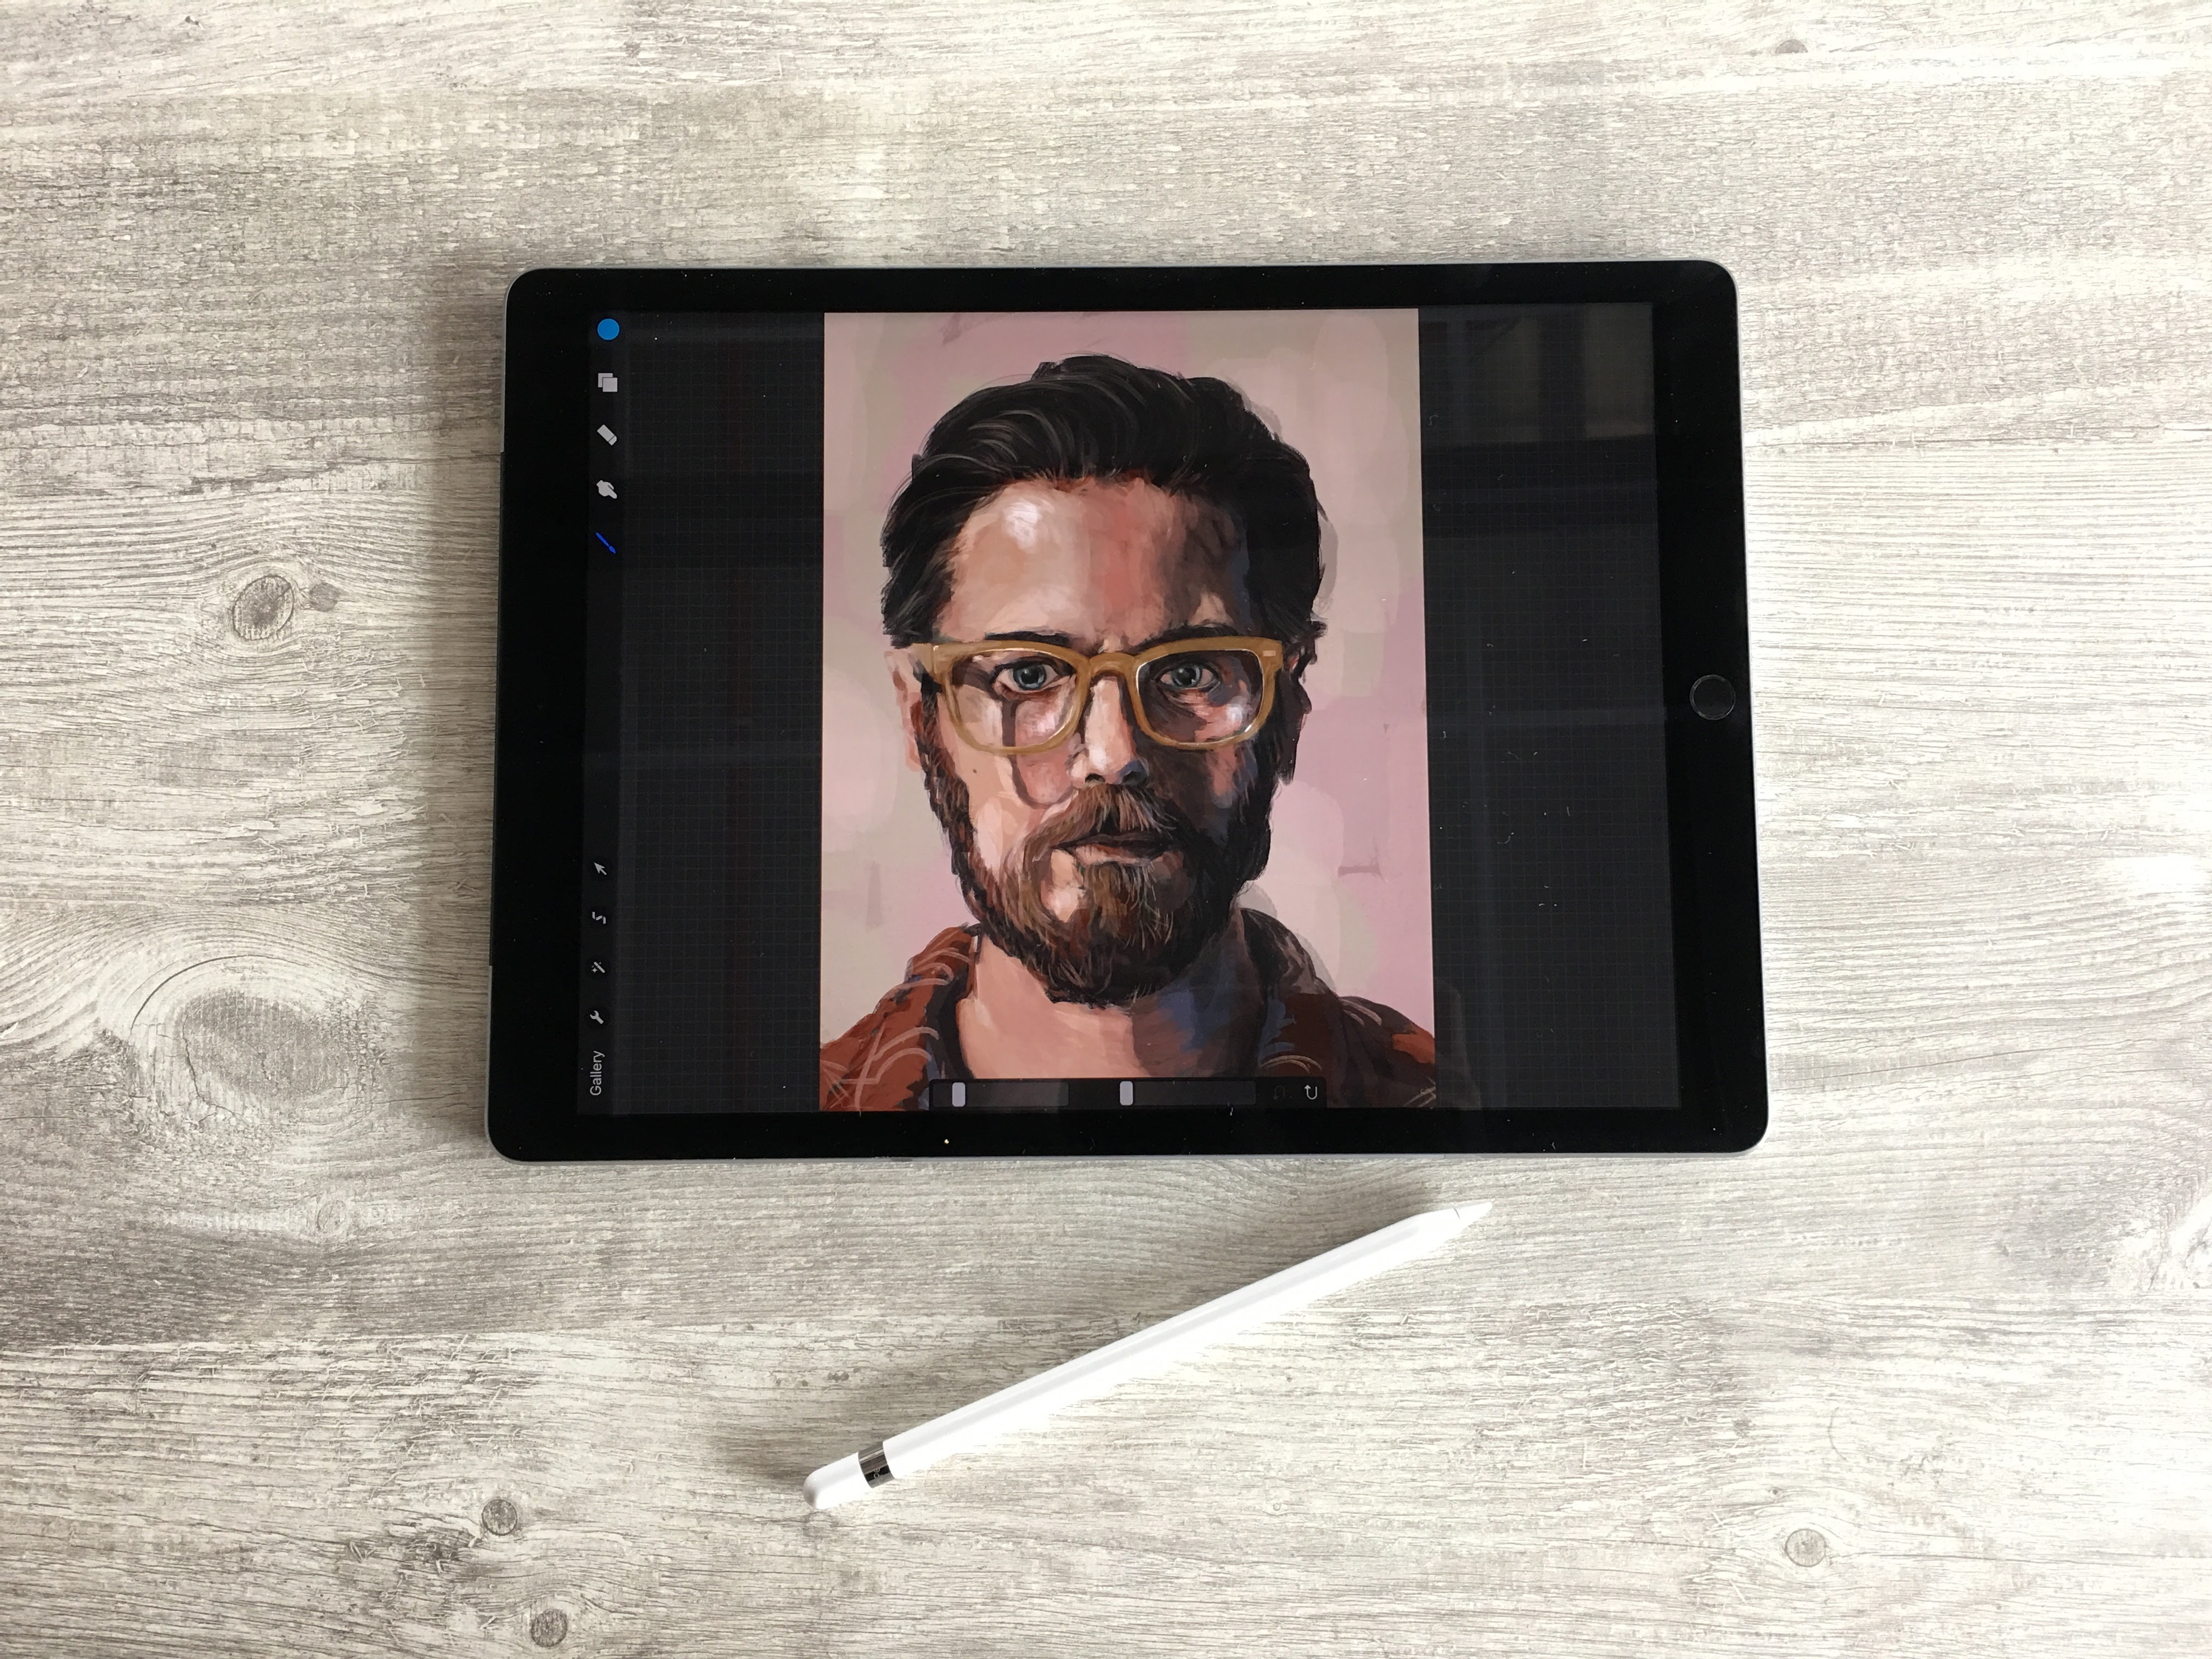 4032x3024 A Weekend With The Ipad Pro Review Amp Price In Singapore